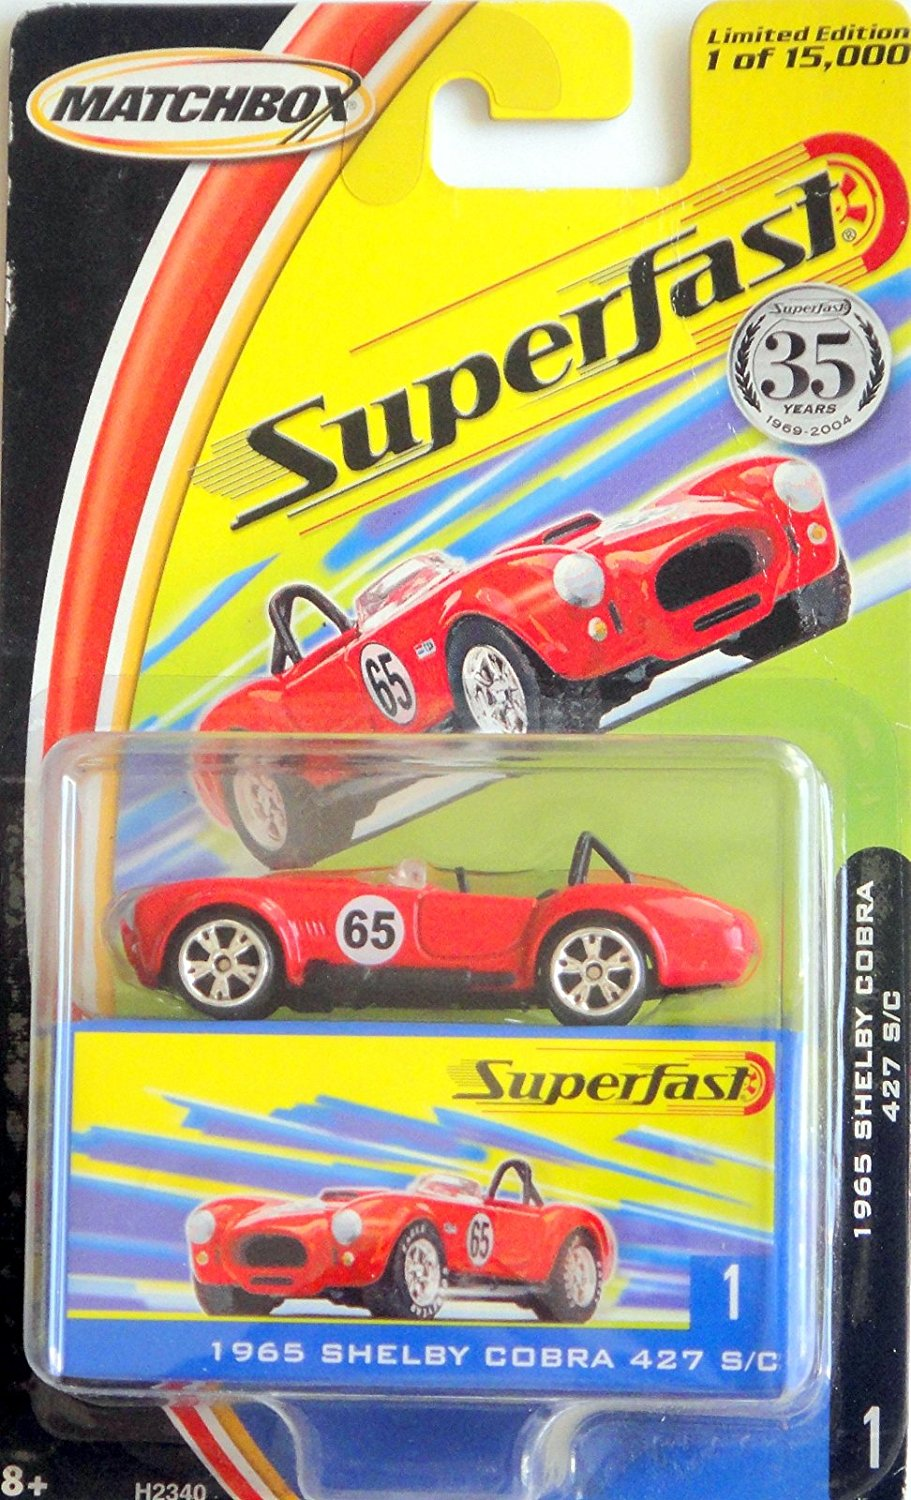 2004 Superfast 35 Years 1965 Shelby Cobra 427 S C No1, 1 64 scale By Matchbox by